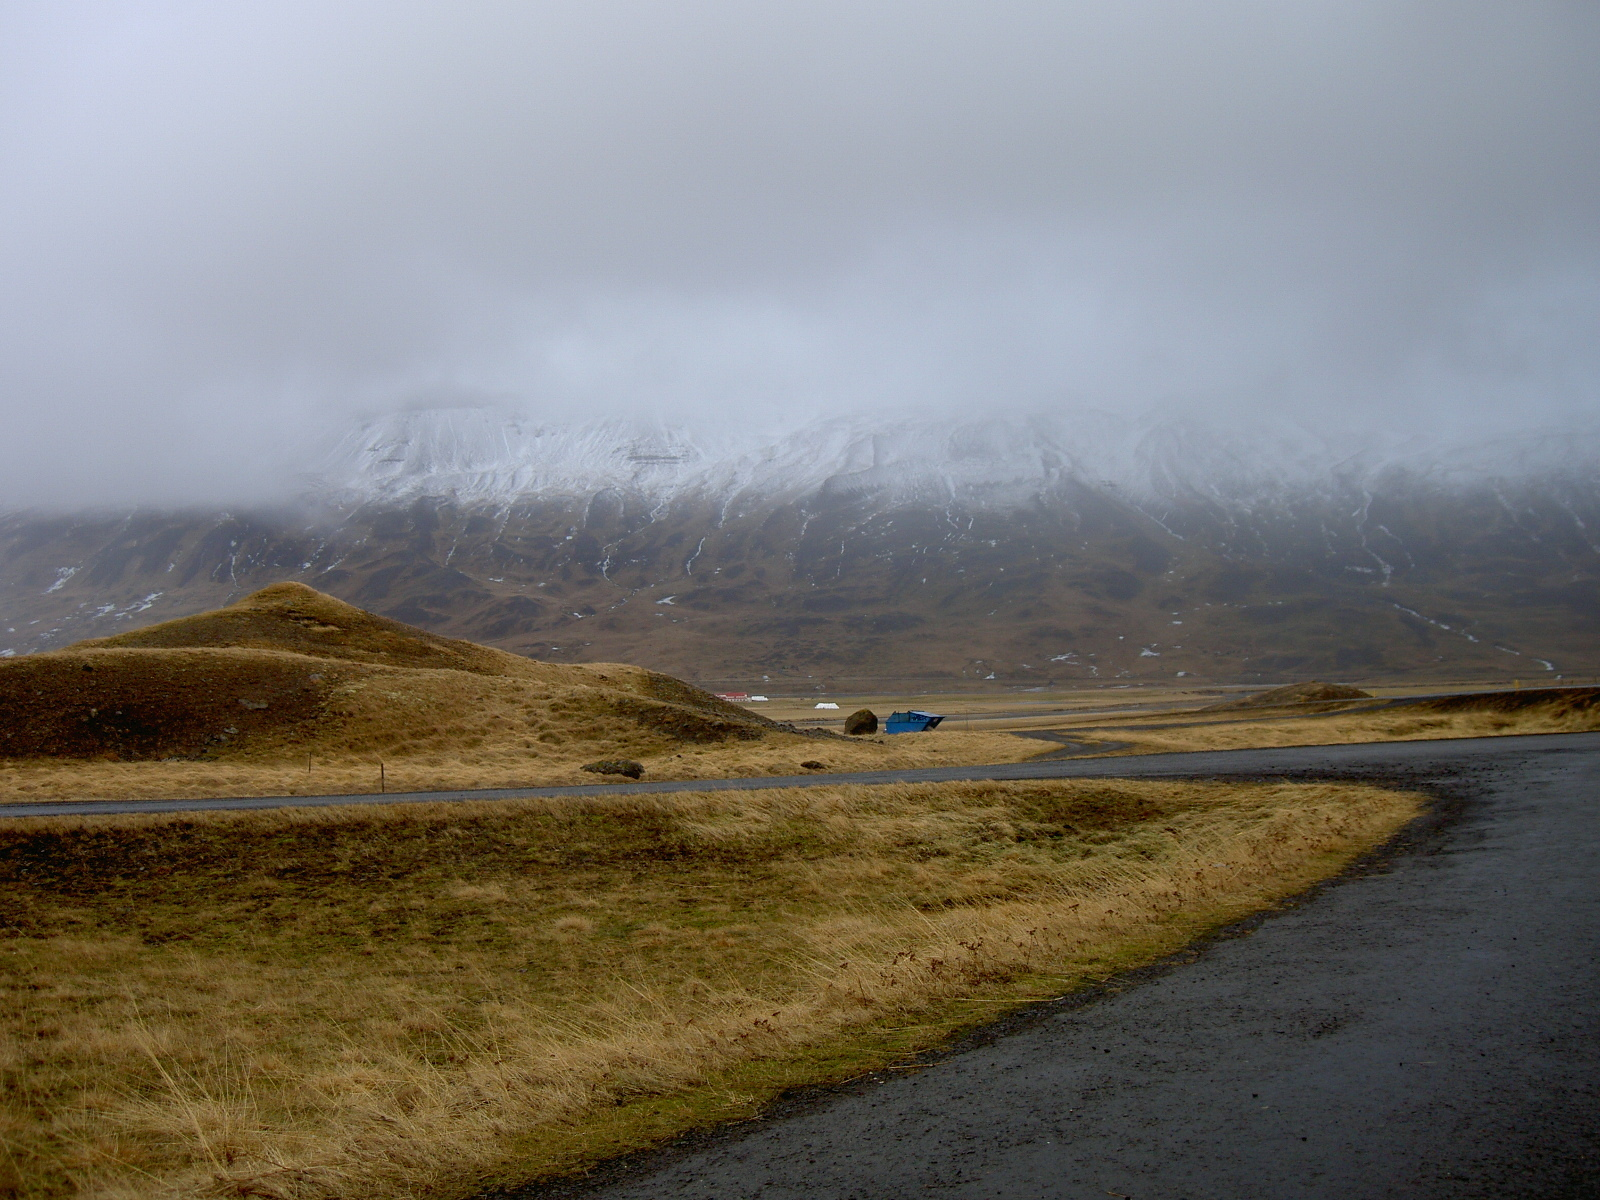 Road between Hvammstangi and Blonduos, Northwest Iceland (purpose of page is to display an image)